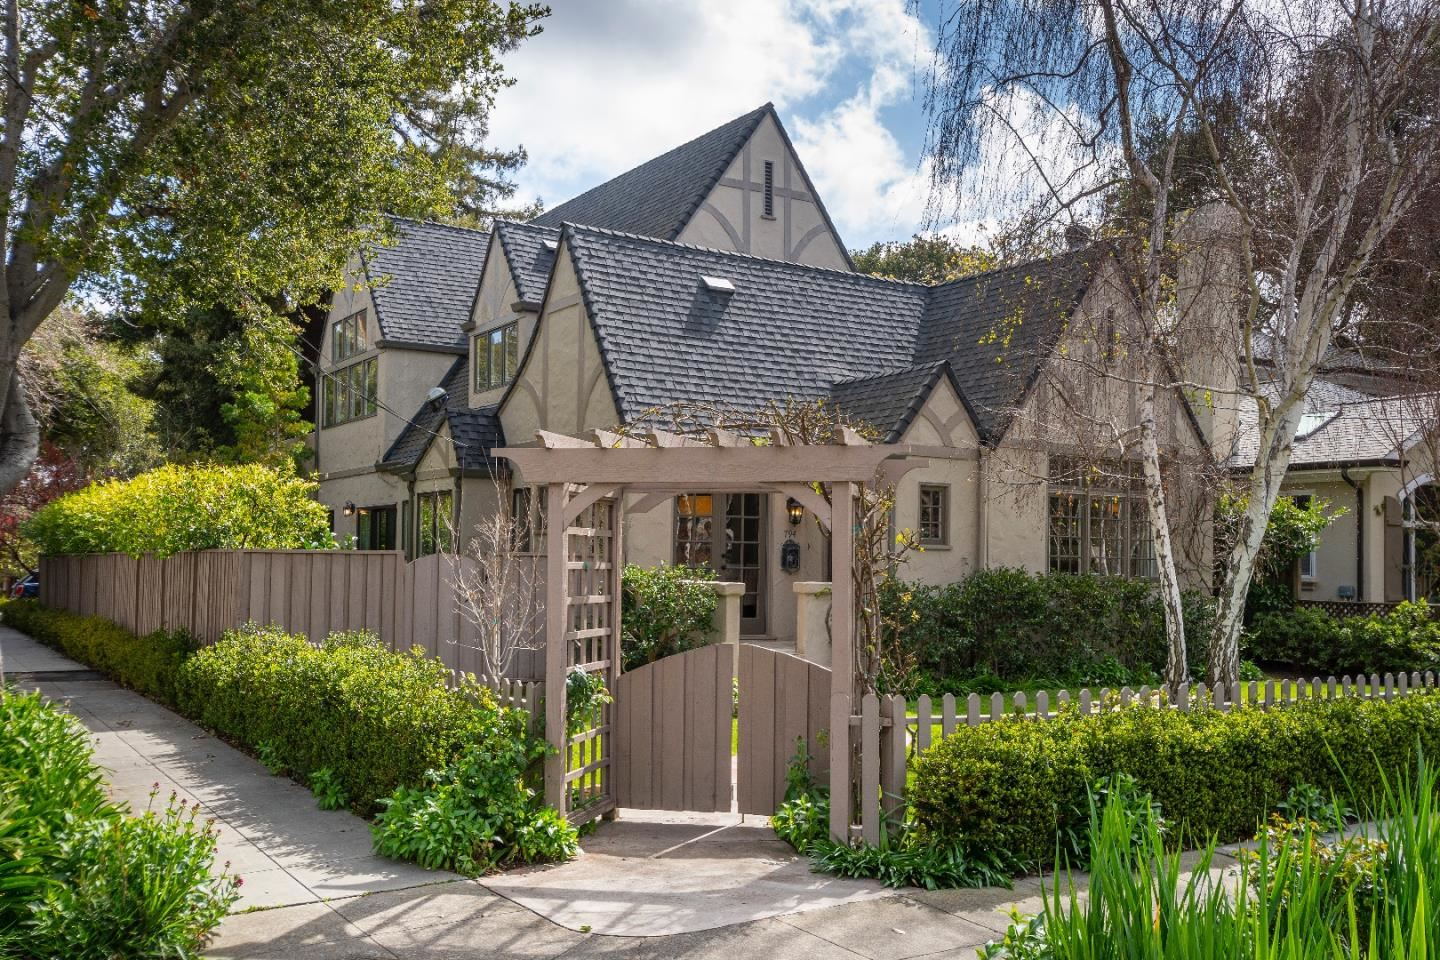 Photo for 794 Melville AVE, PALO ALTO, CA 94301 (MLS # ML81836234)